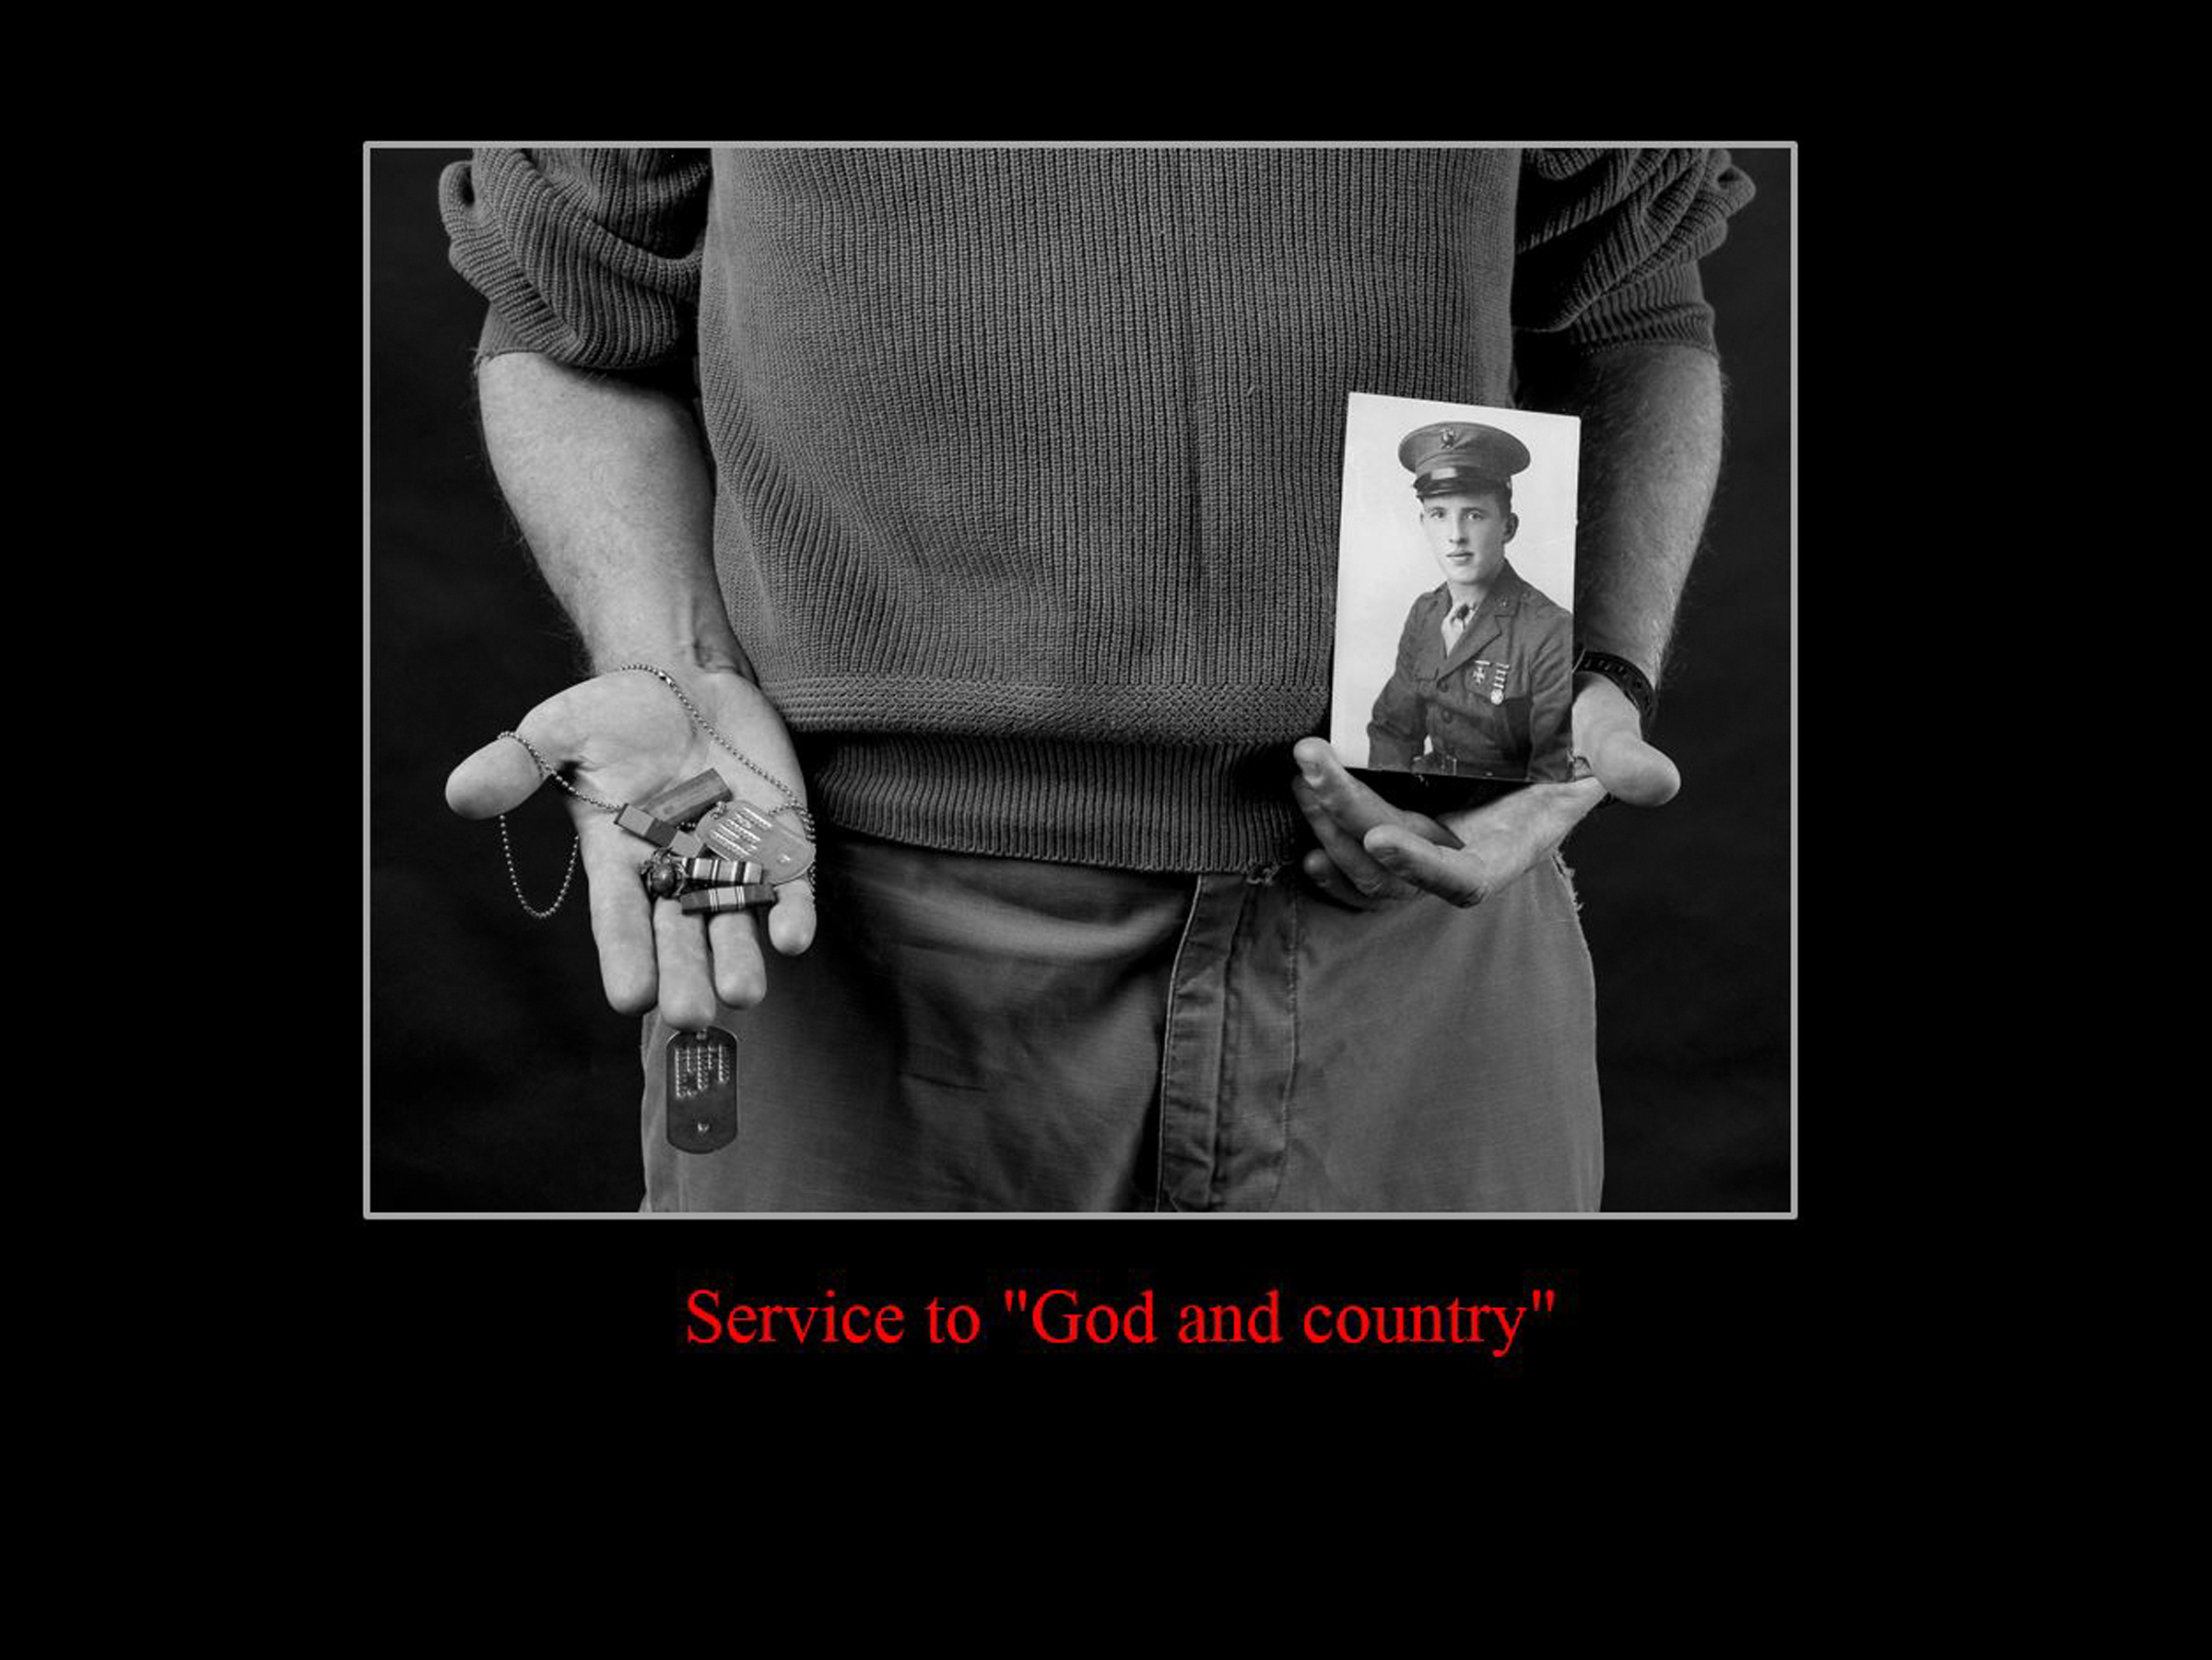 servicetoGodandcountry